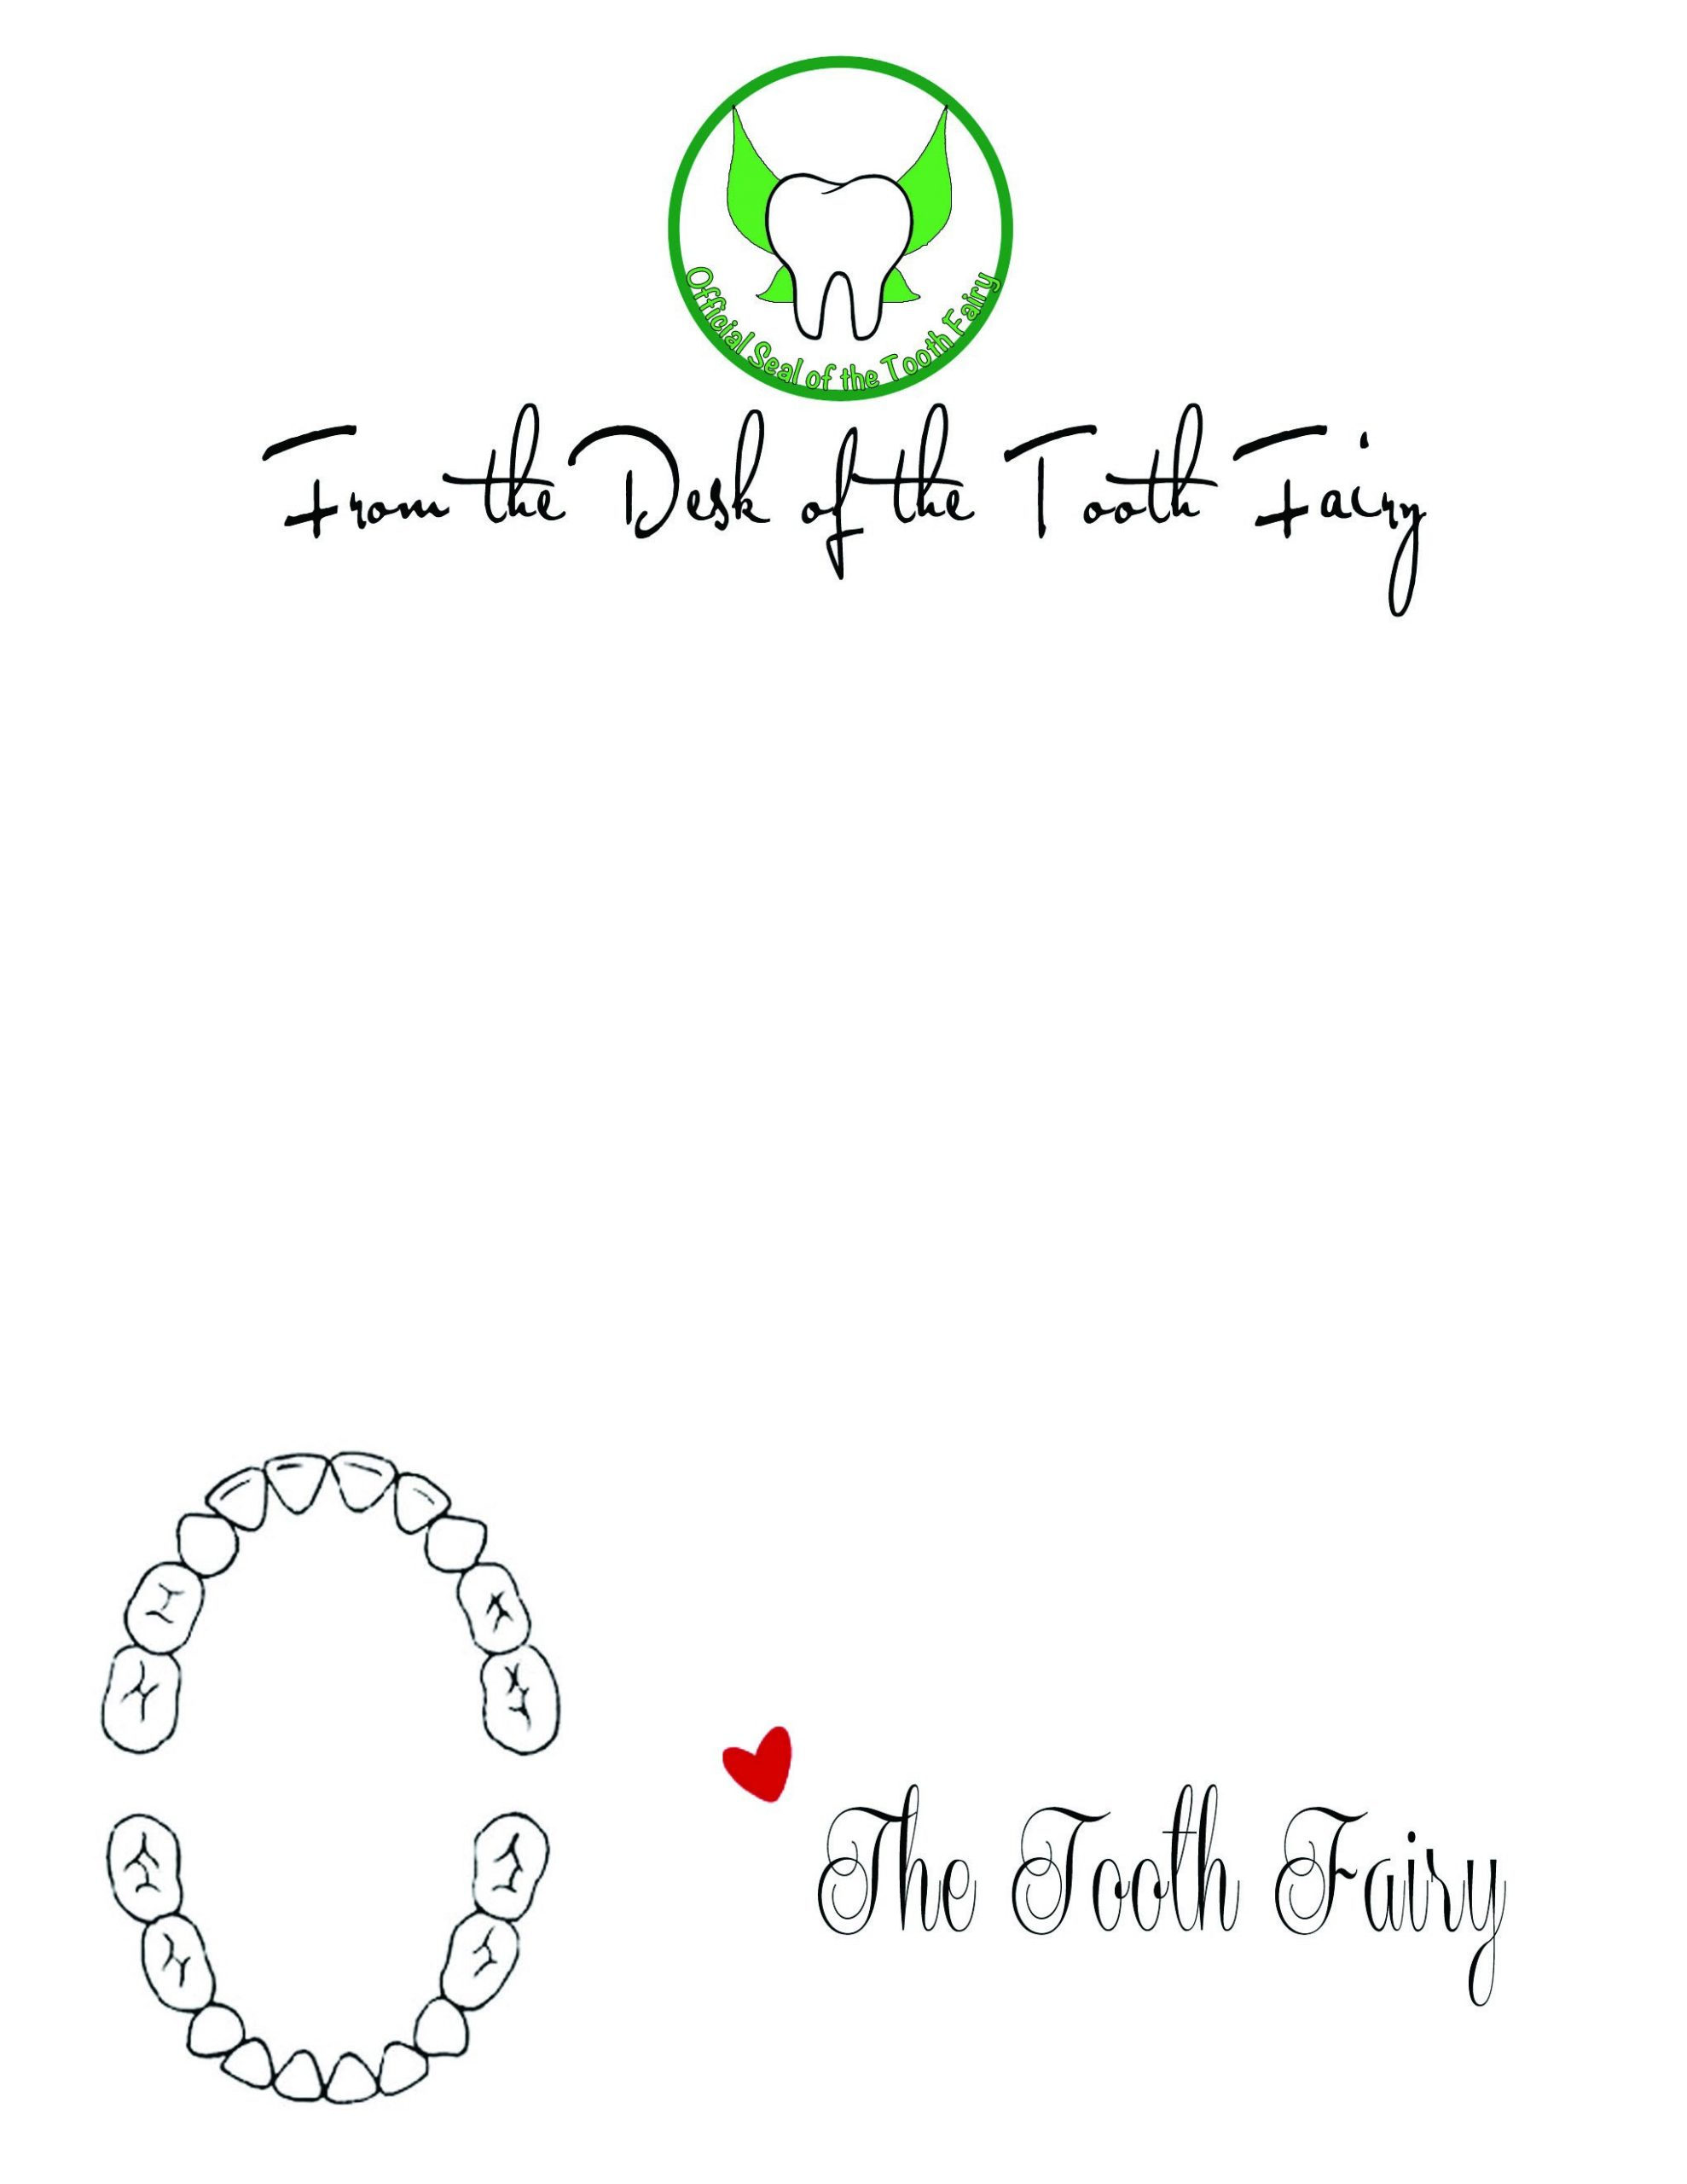 tooth fairy letter template word  The Spohrs Are Multiplying Tooth Fairy Letters - tooth fairy letter template word